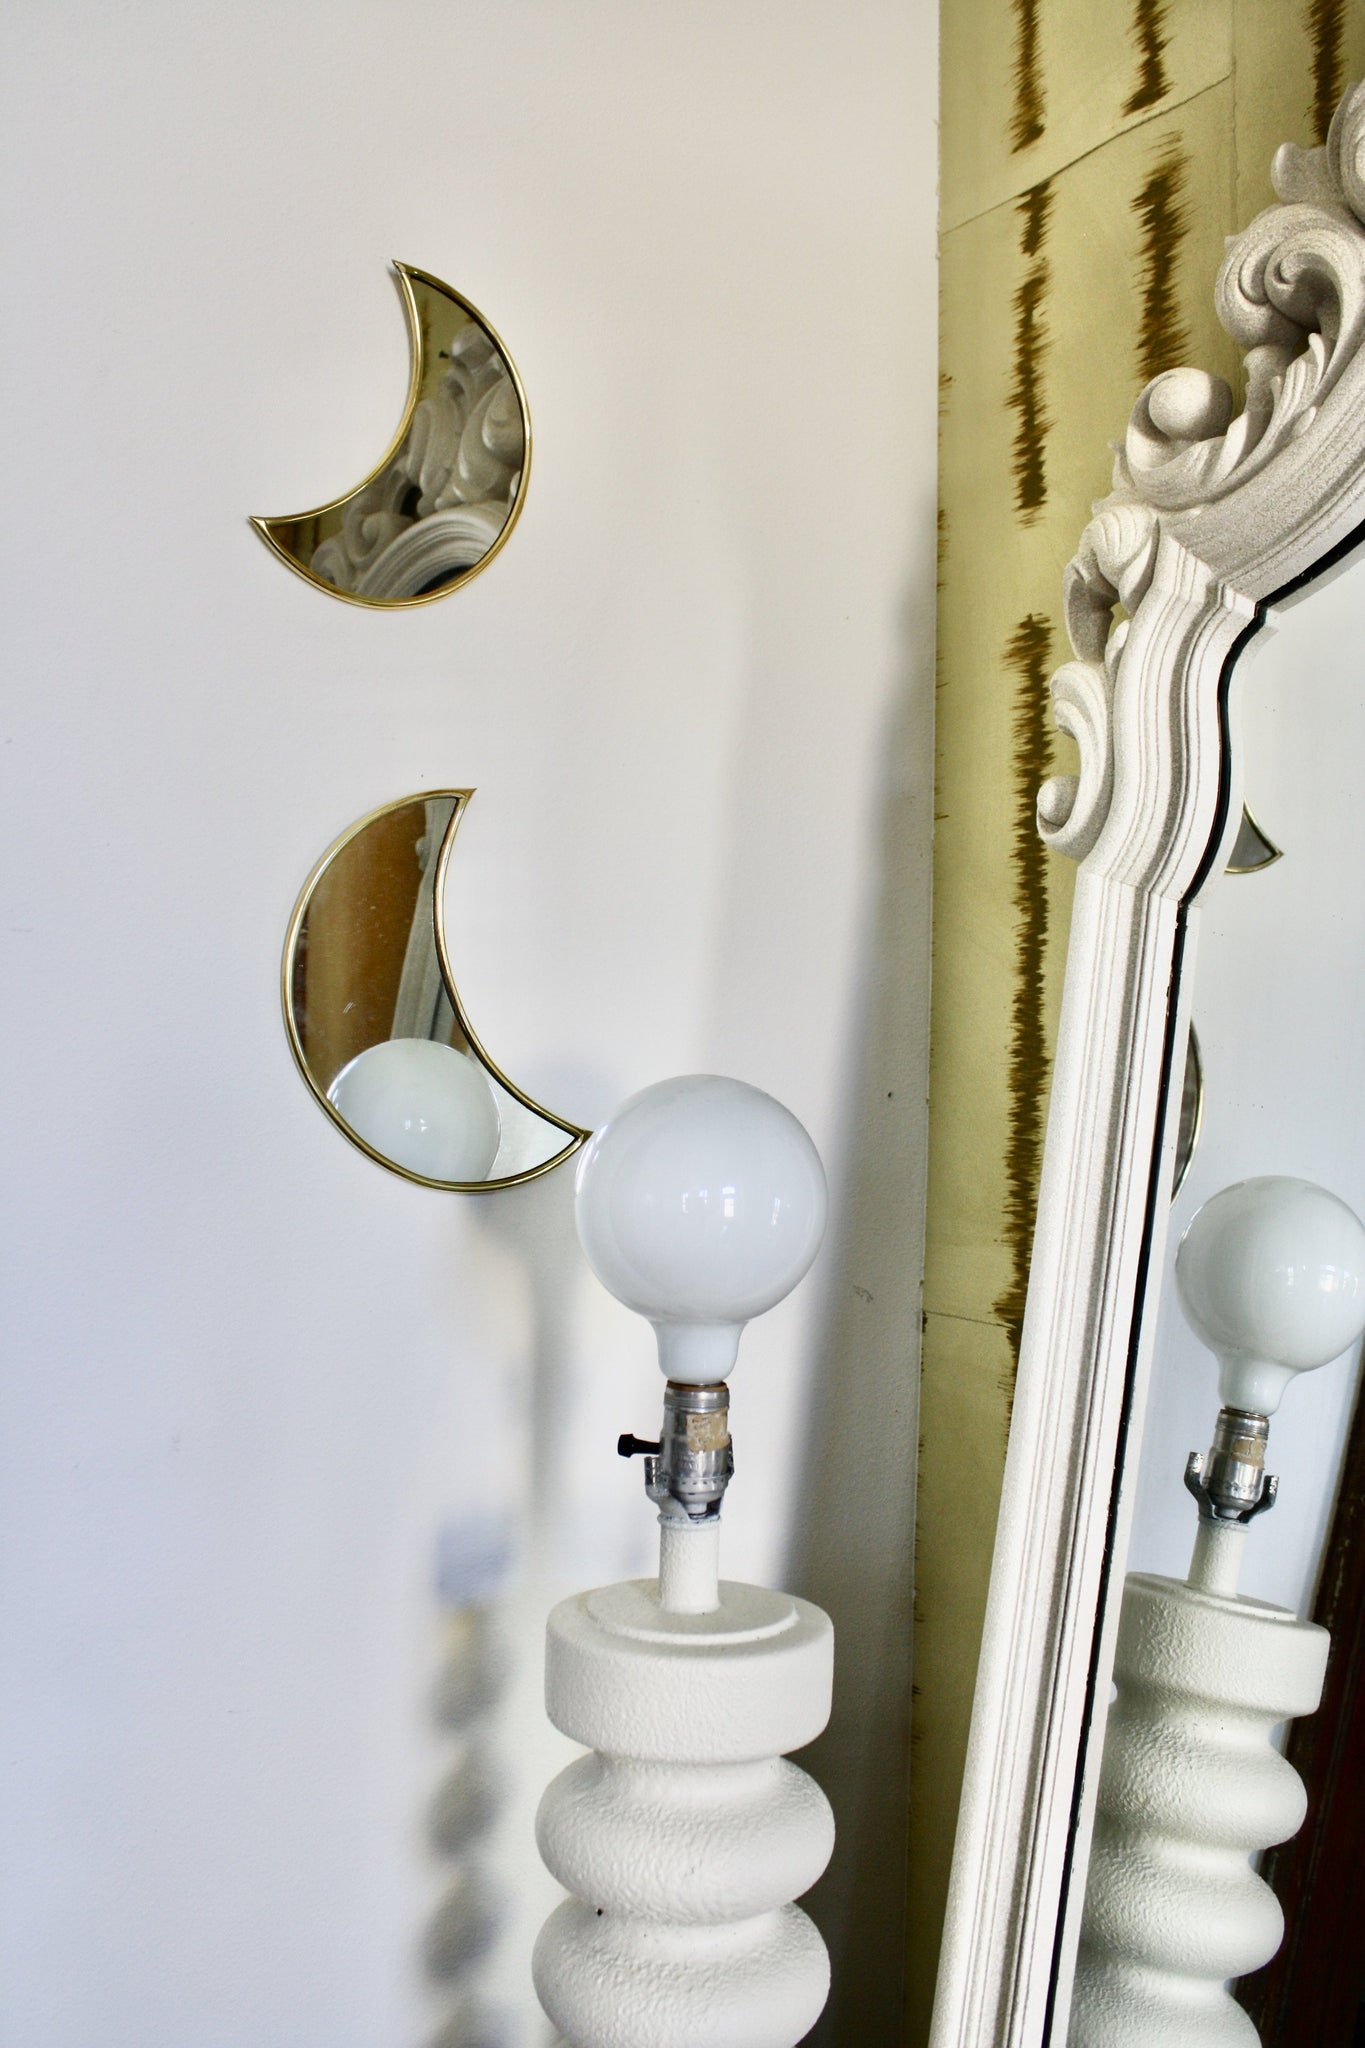 Set of 3 Small Crescent Moon Brass Mirrors Handmade in Morocco